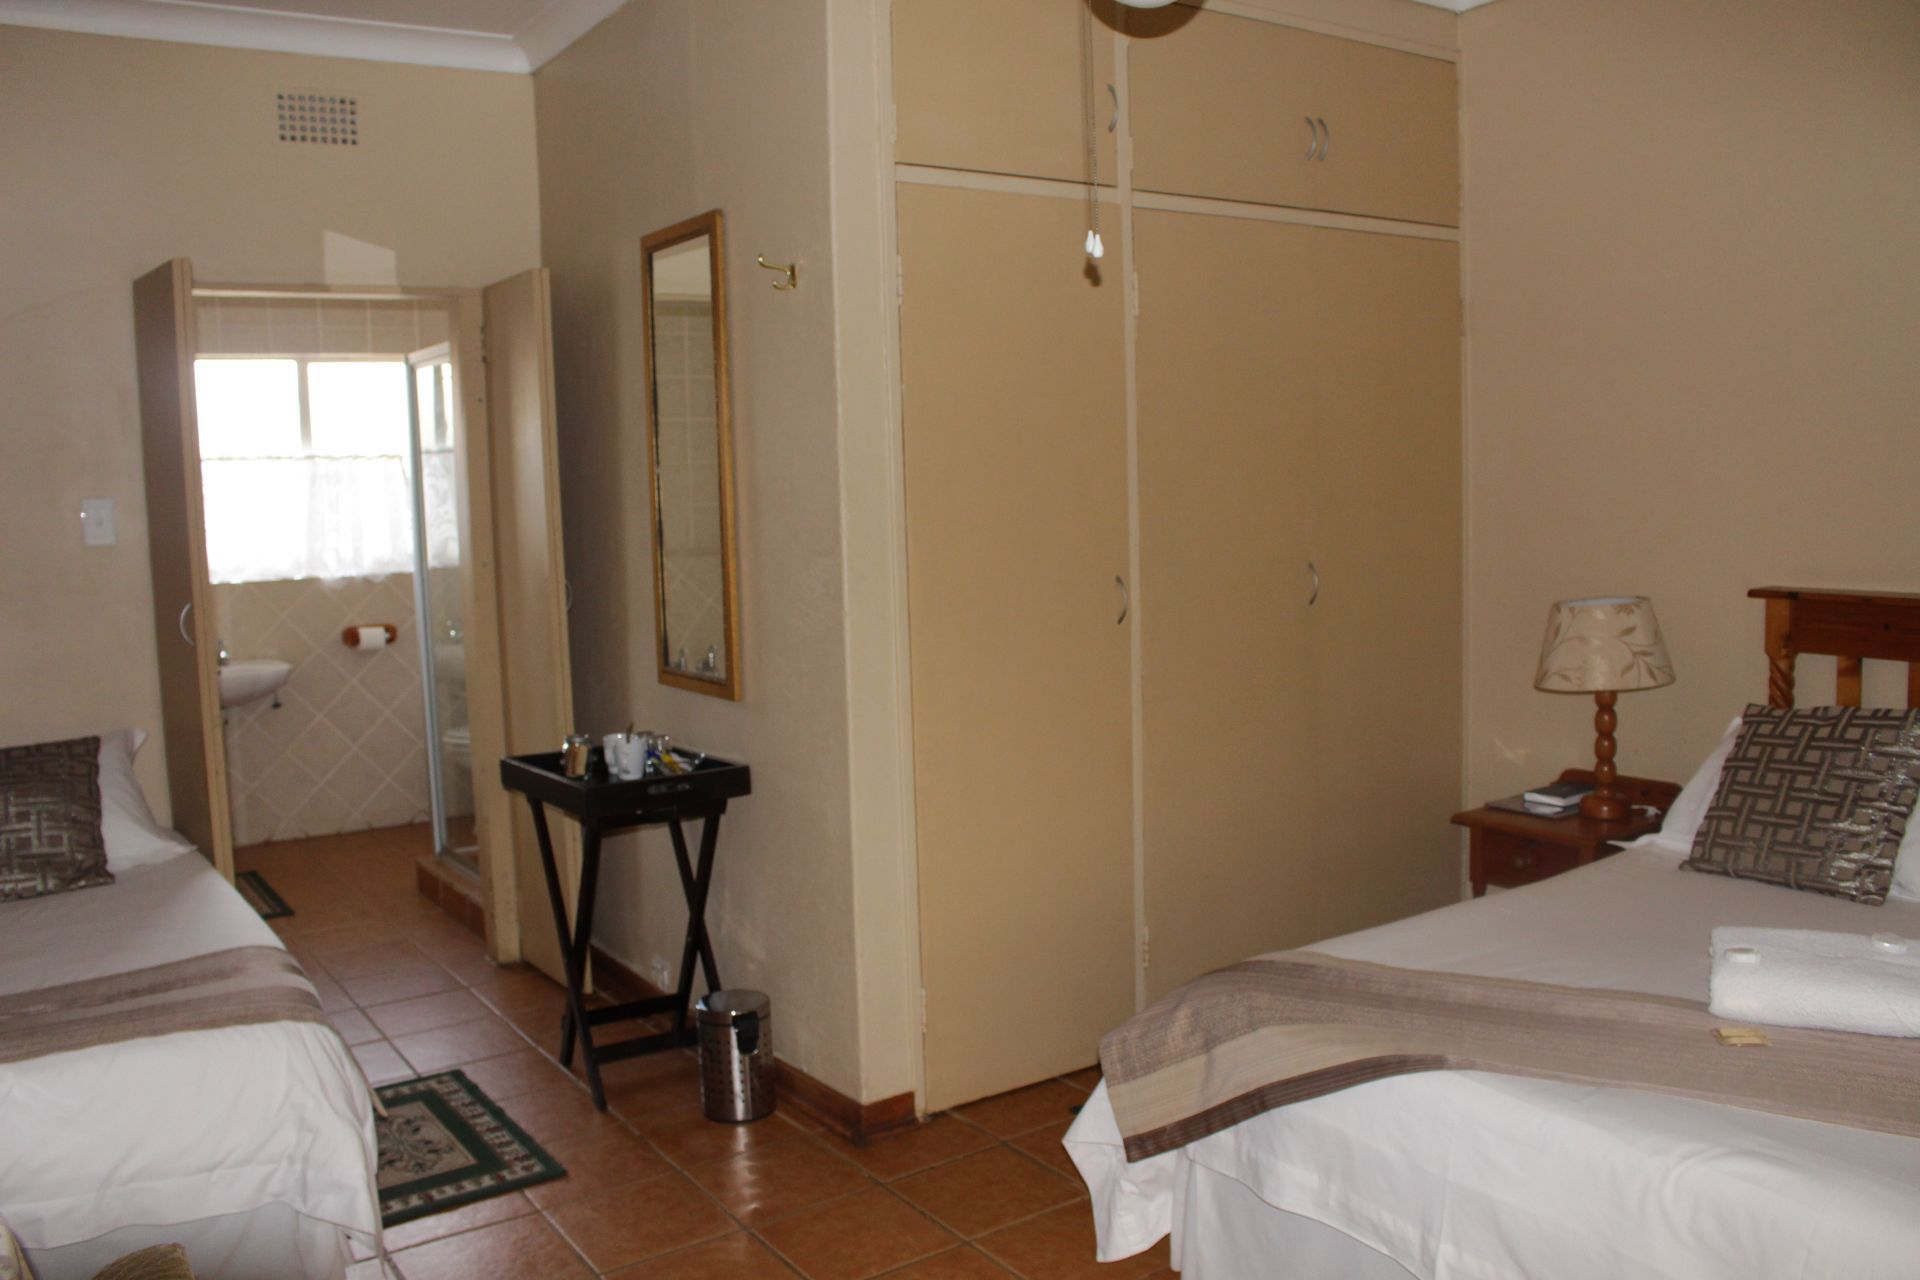 Potchefstroom Central property for sale. Ref No: 13623699. Picture no 23